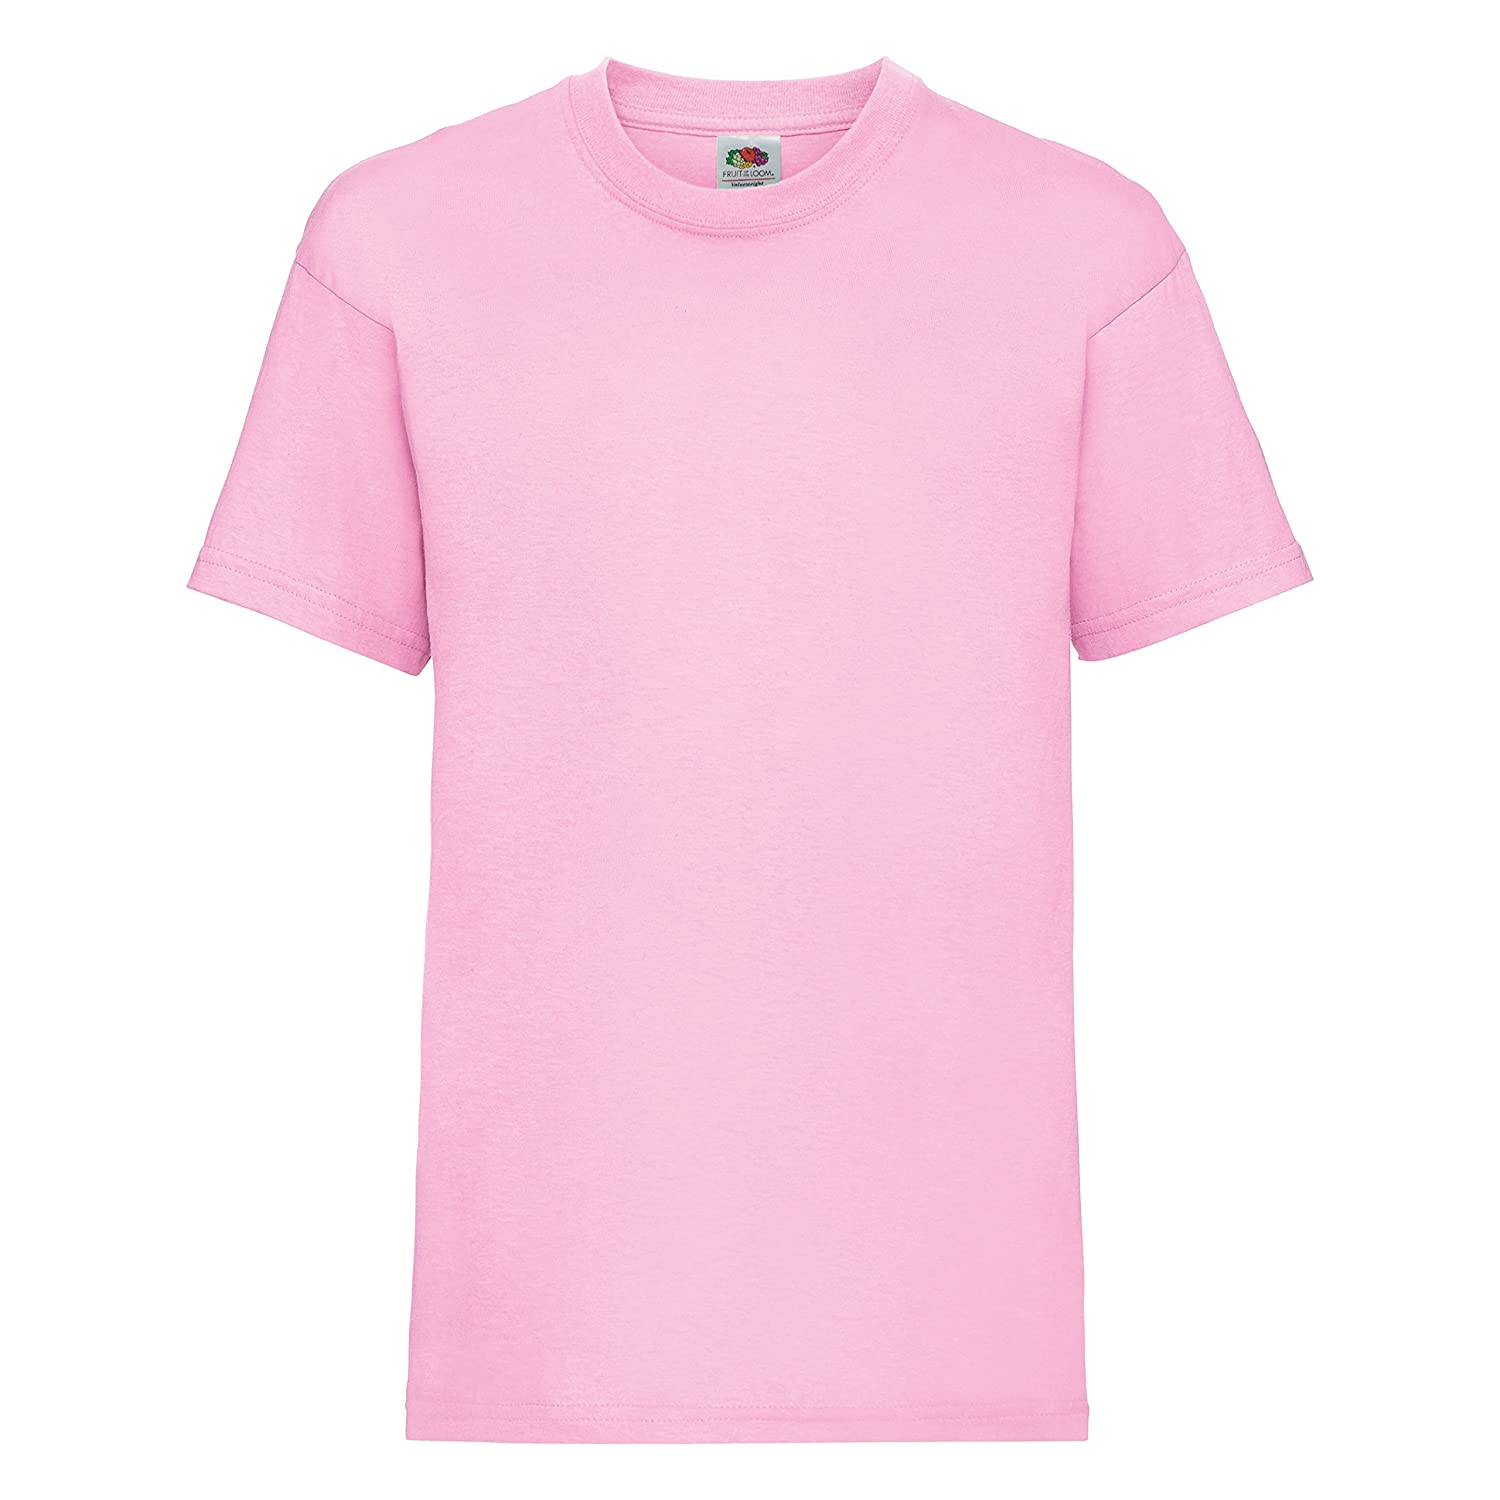 20db5d2a1 Cotton, , Short sleeve crew neck childrens T-Shirt. Cotton/Lycra rib crew  neck with taped neckline. Produced using Belcoro yarn for a softer feel and  ...